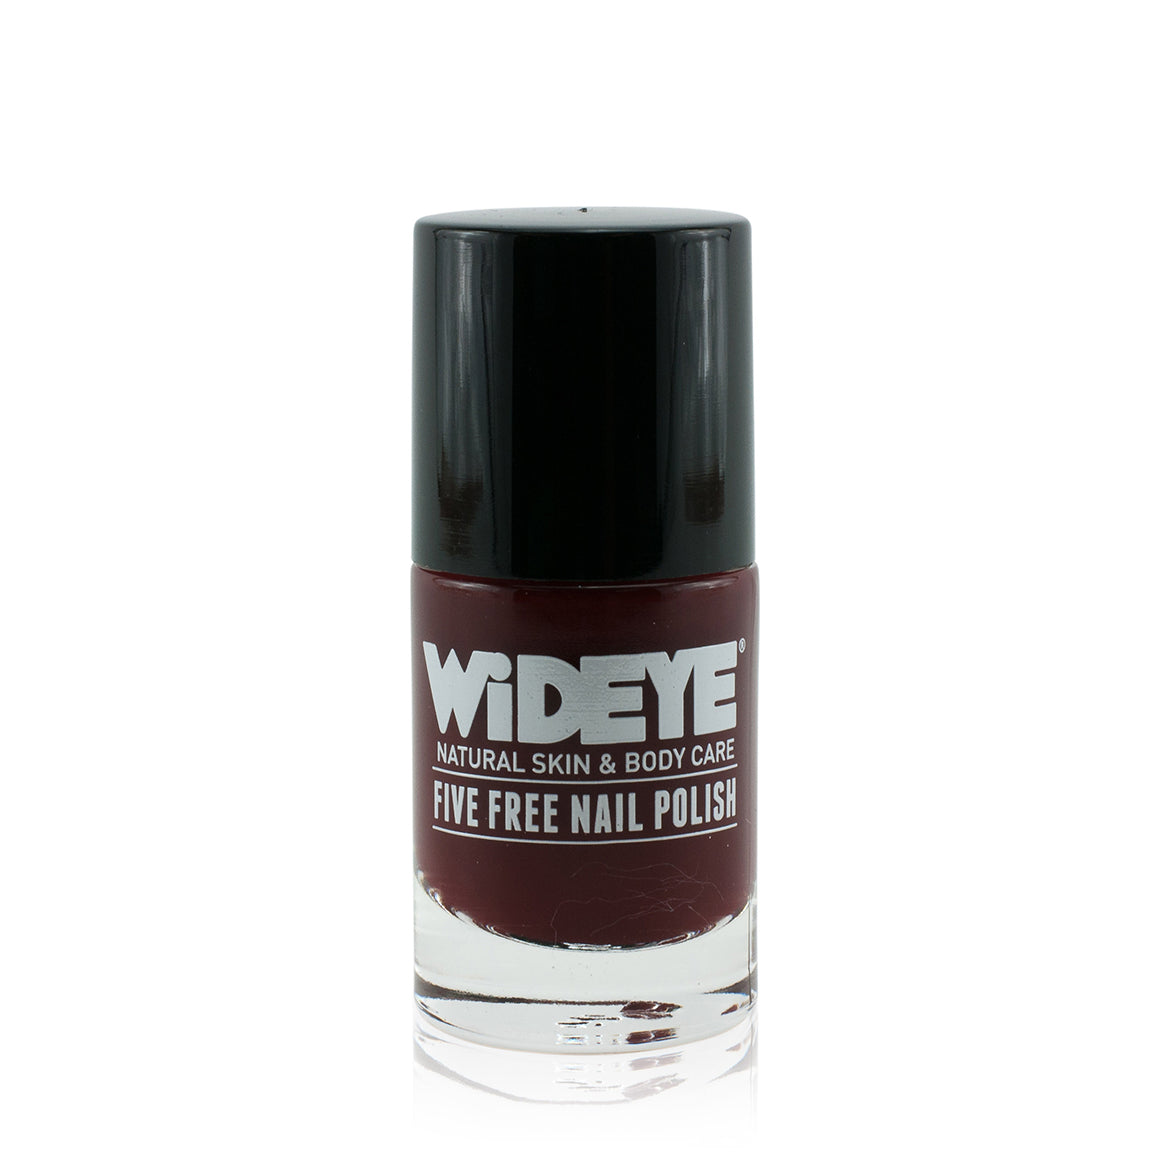 Dark red nail varnish in glass bottle by WiDEYE